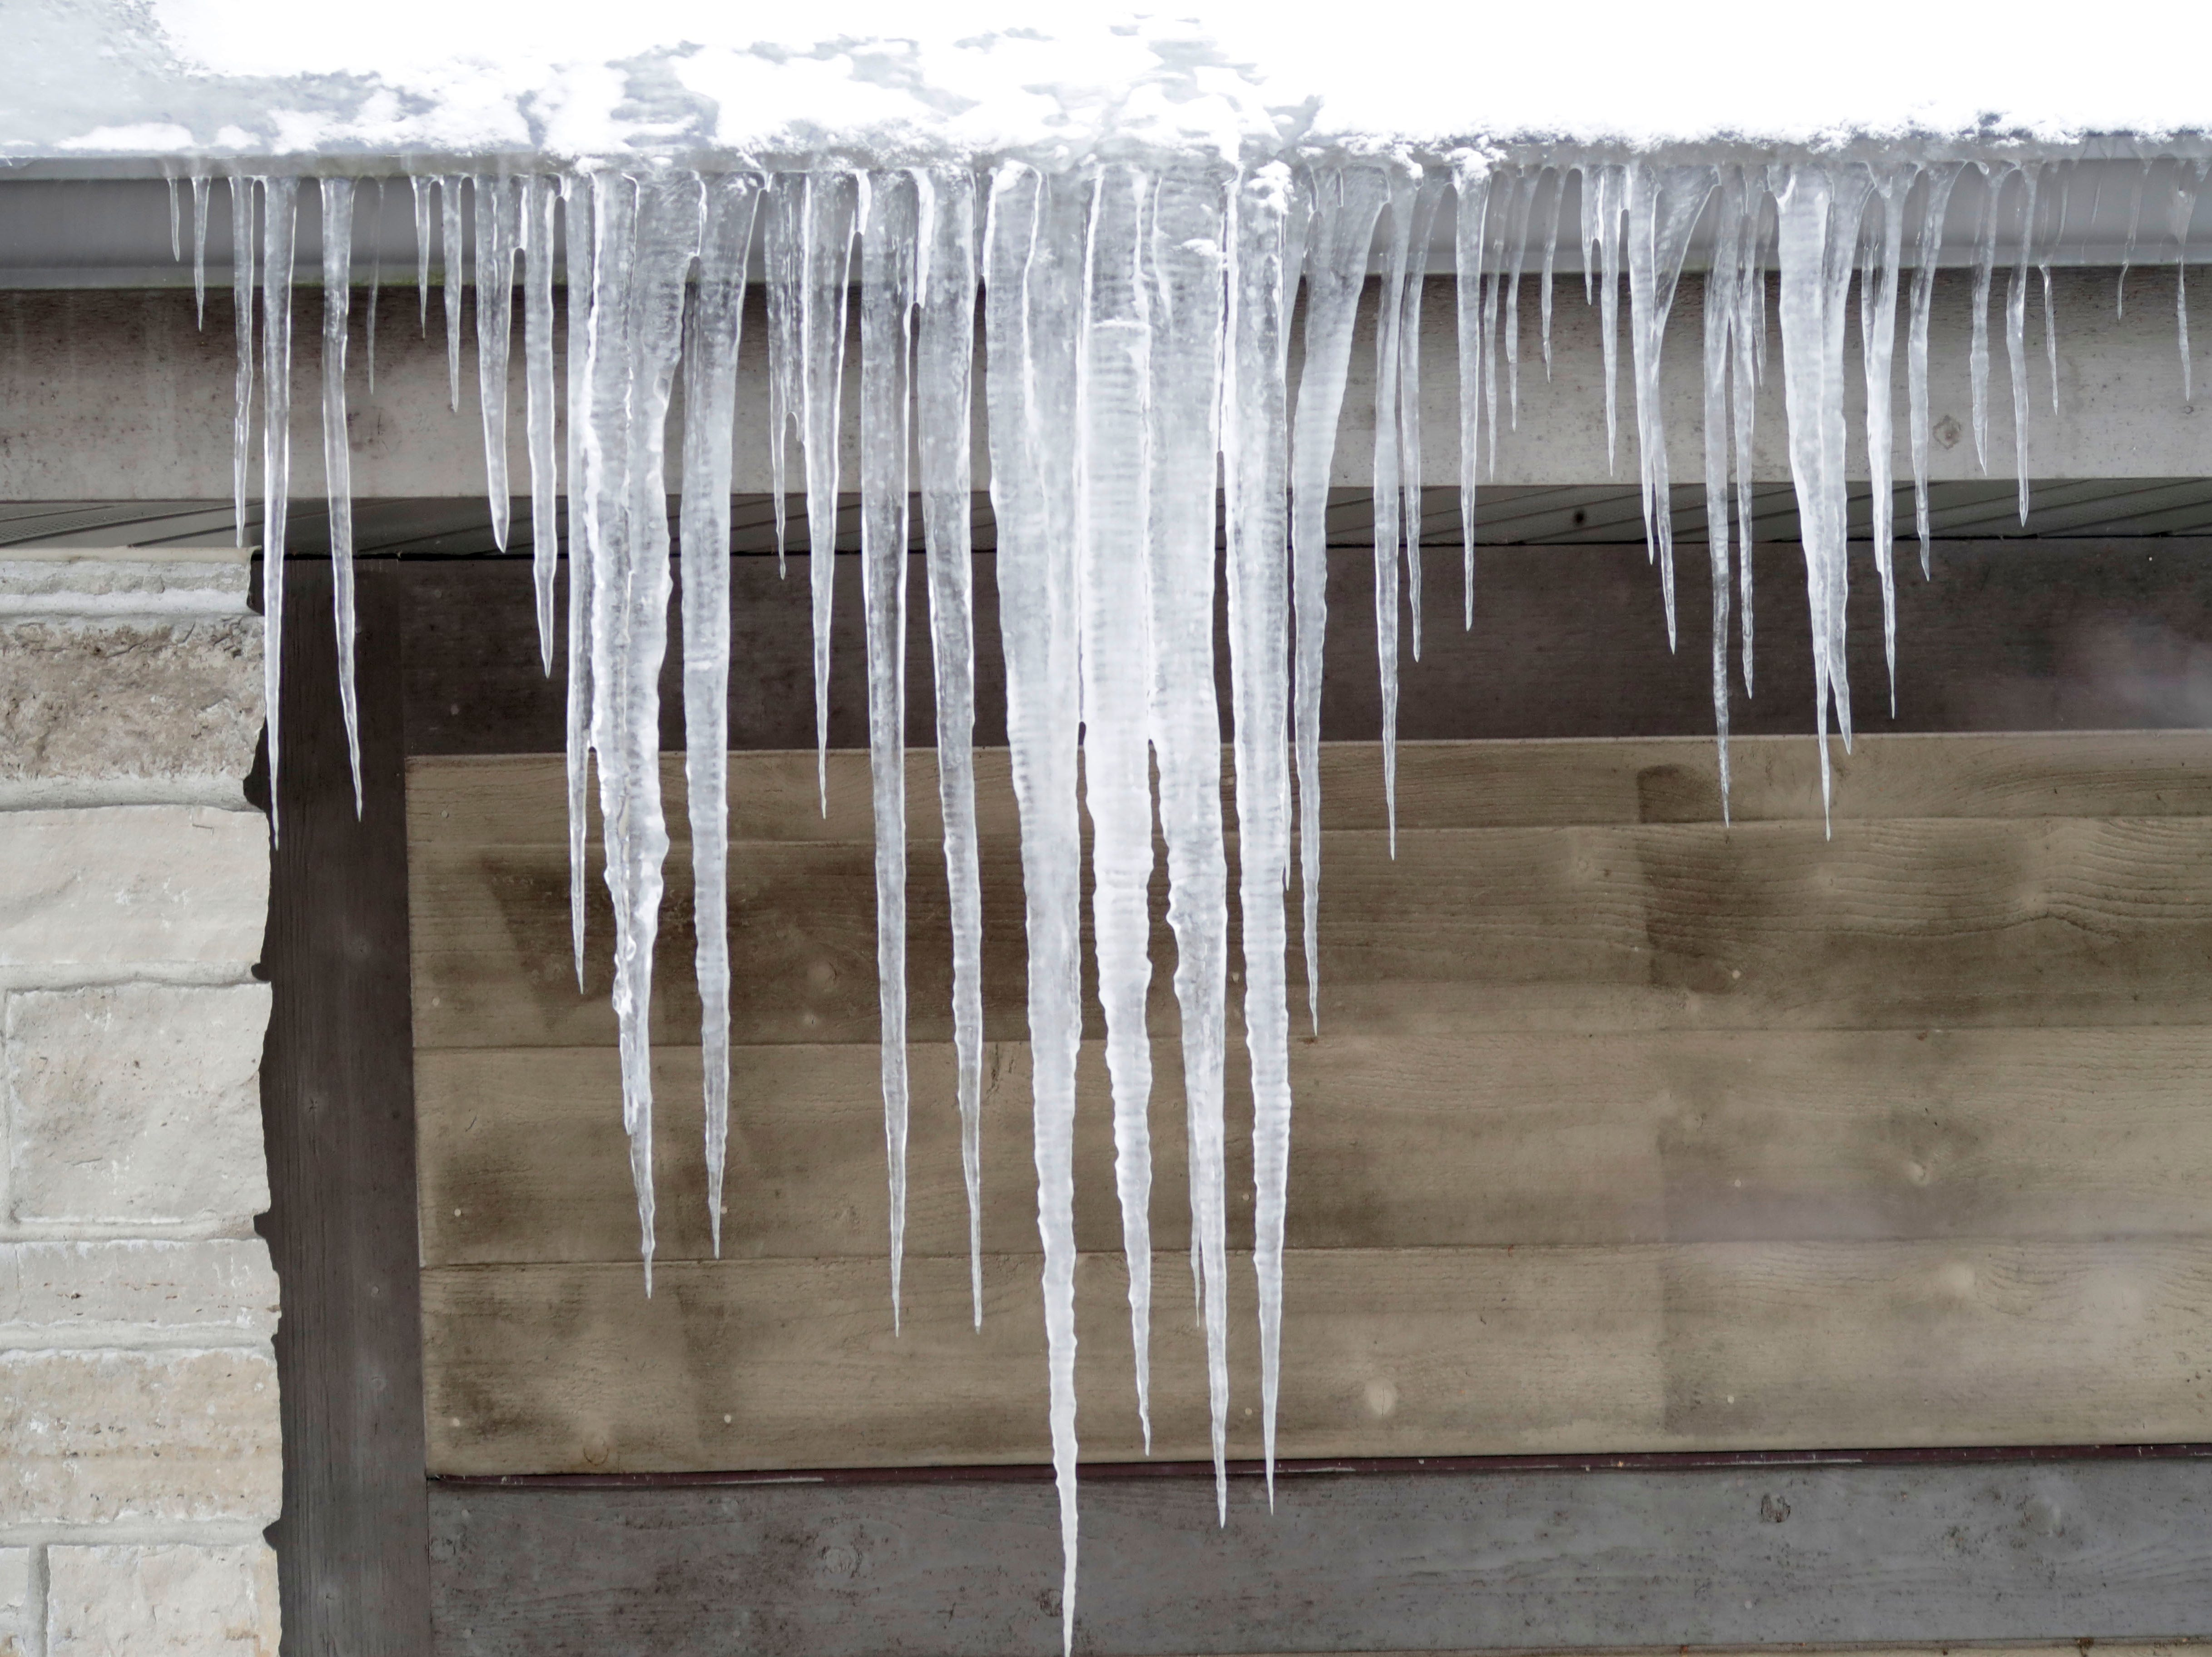 Icicles hang from the eves at the Ellwood H. May Environmental Park, Tuesday, March 5, 2019, in Sheboygan, Wis.